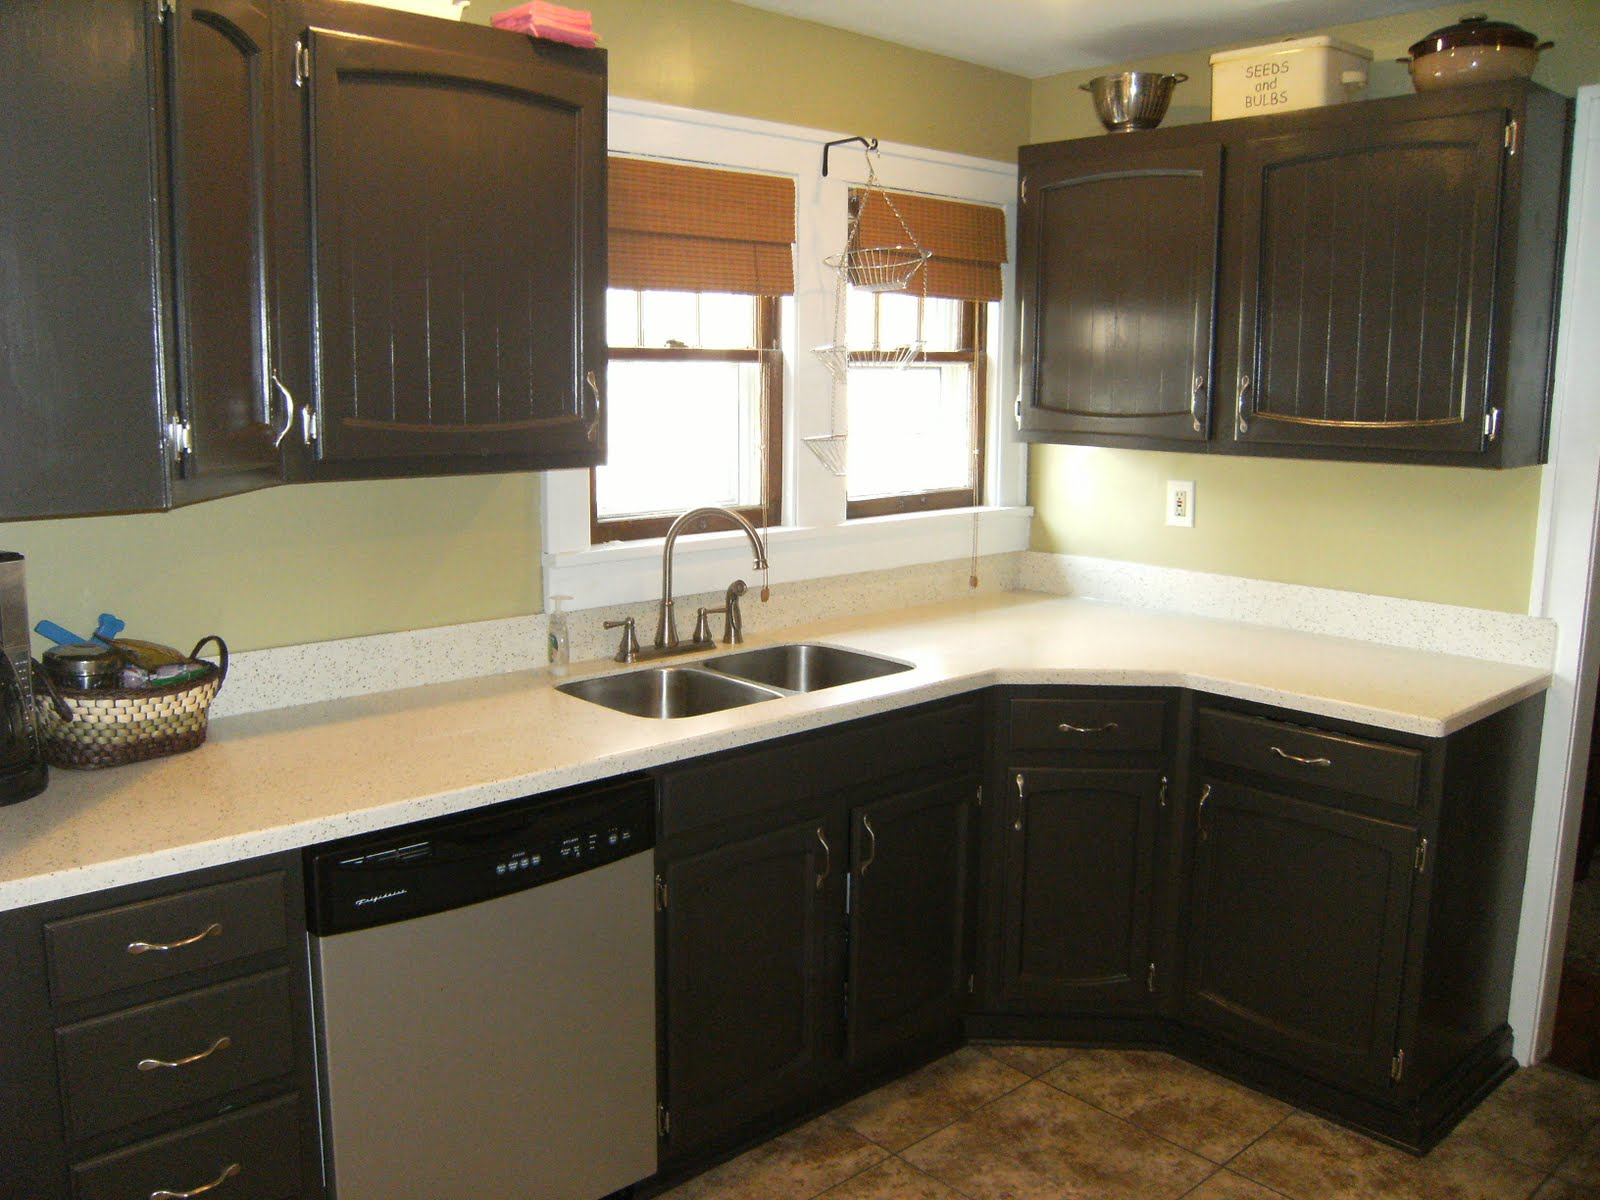 Painted projects for Painting kitchen cabinets black